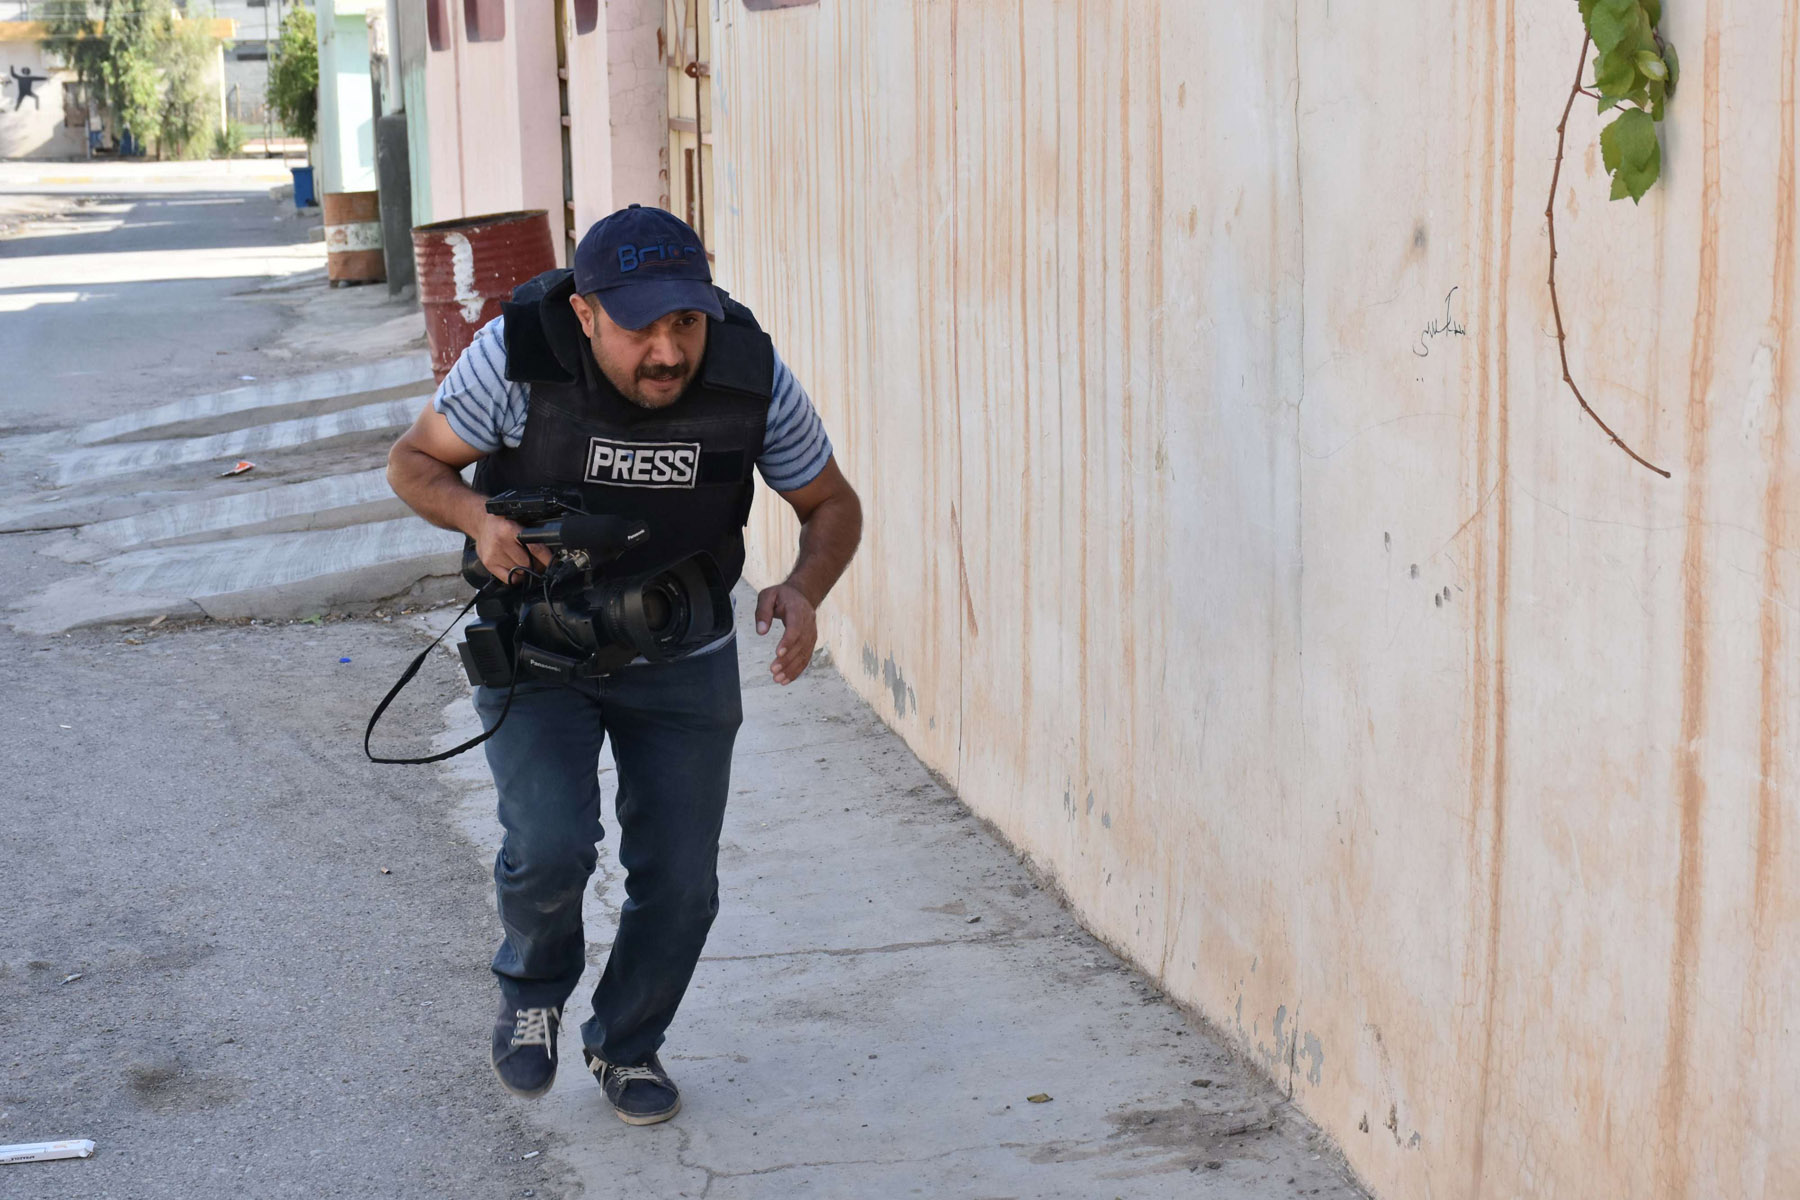 A 2017 file picture shows a video journalist running for cover behind a wall amid fighting in the region of Altun Kupri, about 50km from Erbil. (AFP)